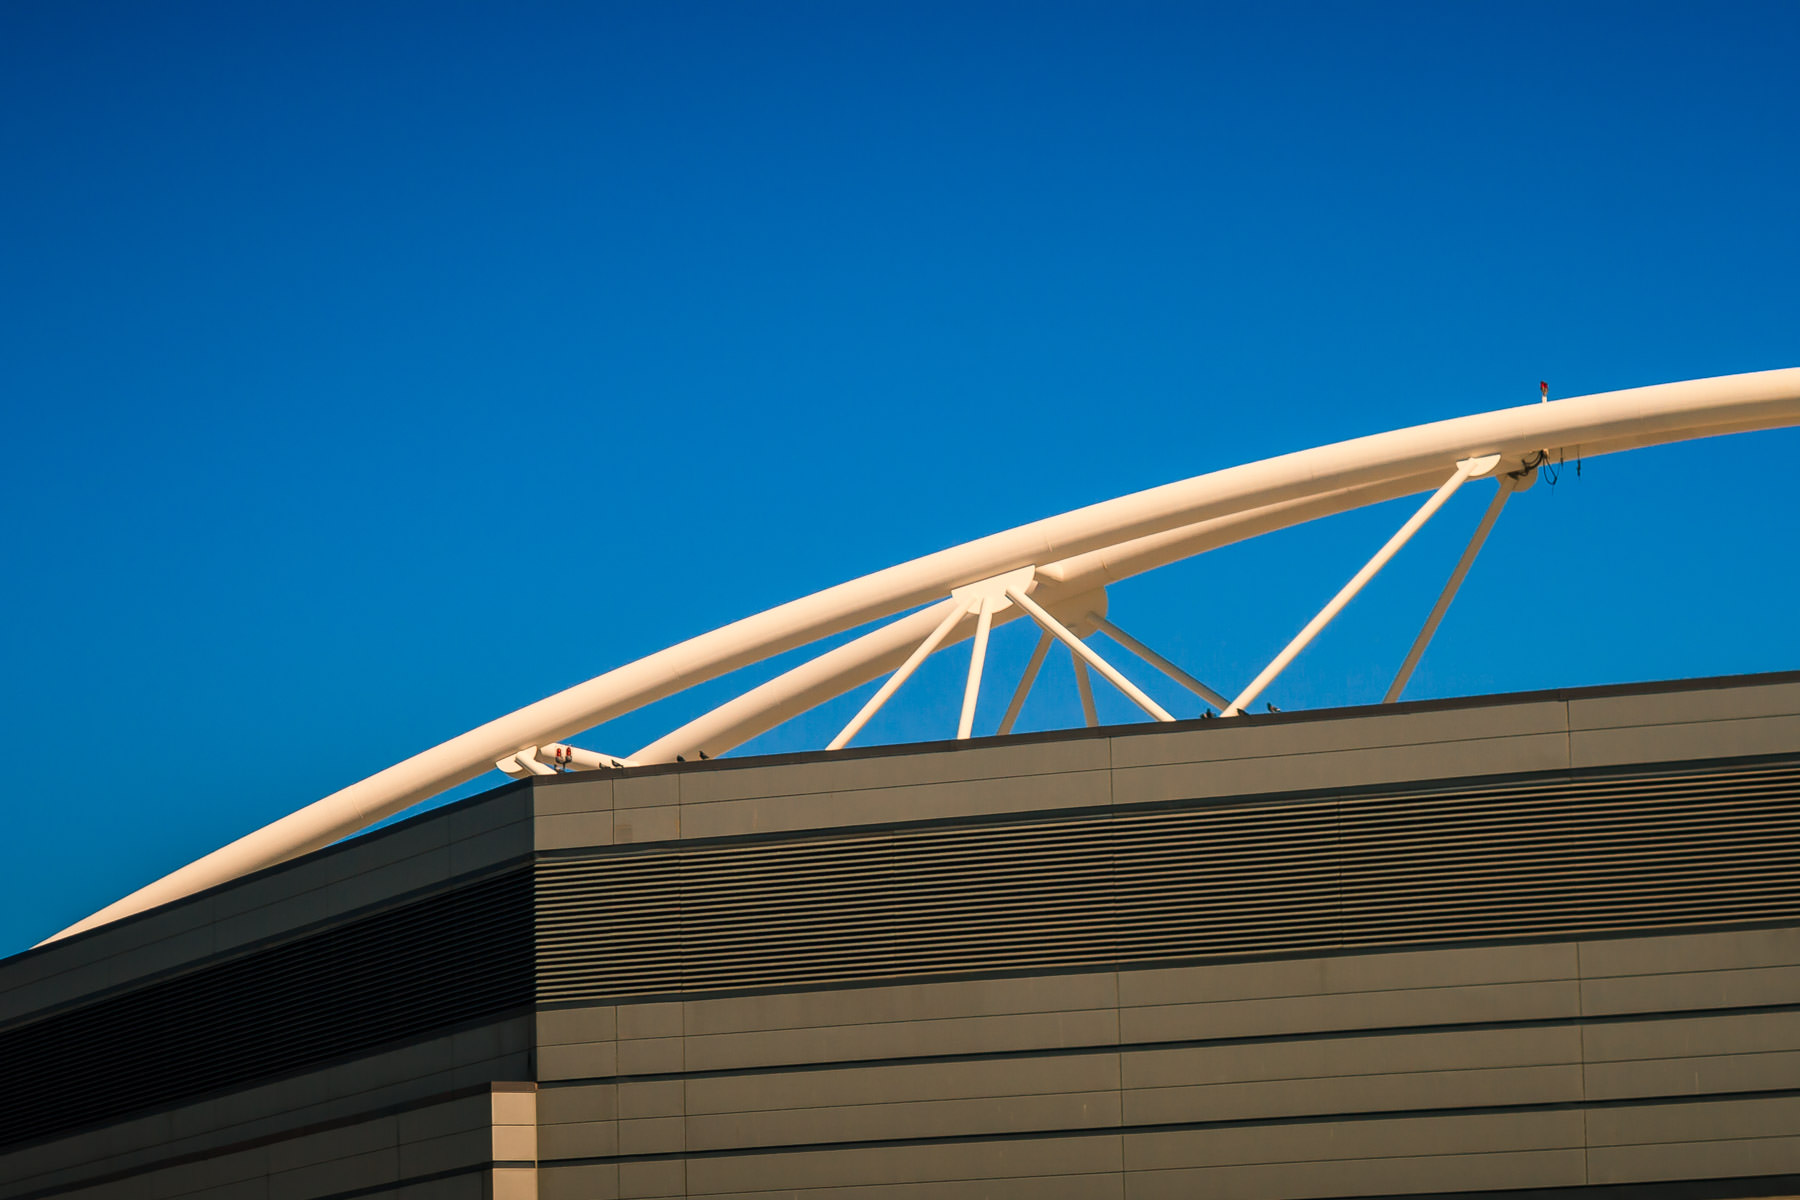 Decorative architectural elements on the roof of the Dallas Convention Center.